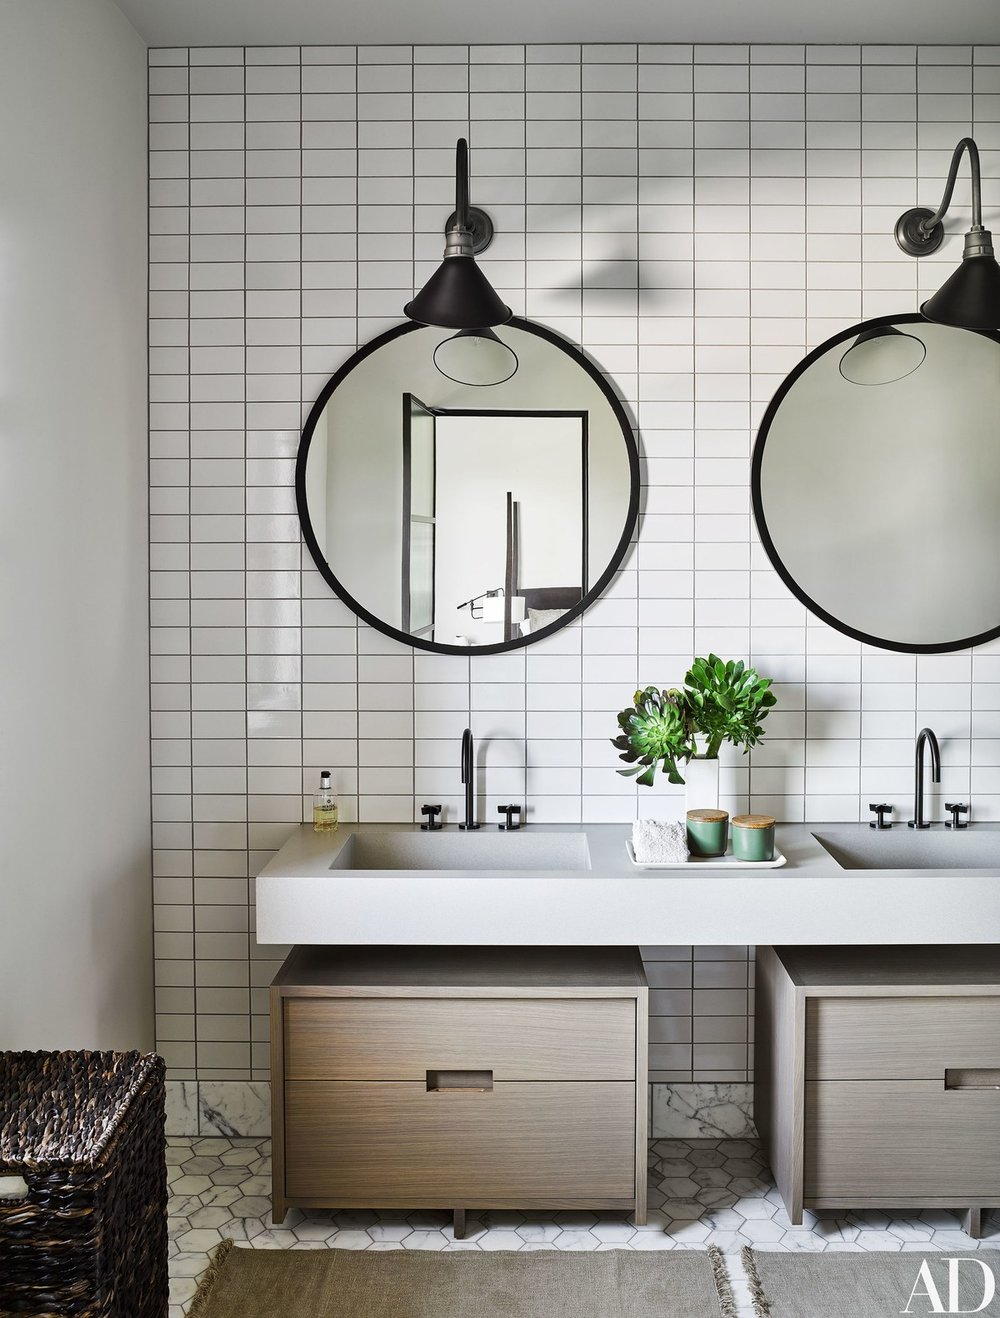 traditional bathroom vanities with double sink and circle mirror | Our Guide to Patterned Tile